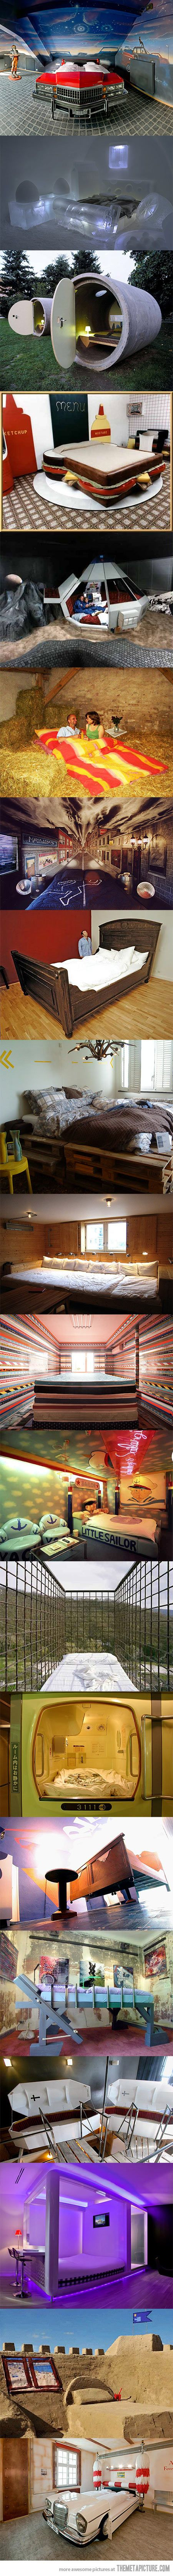 """The worlds most unusual hotel beds """"This made me laugh, some would be interesting to have as theme rooms, while others are really off the wall.:"""